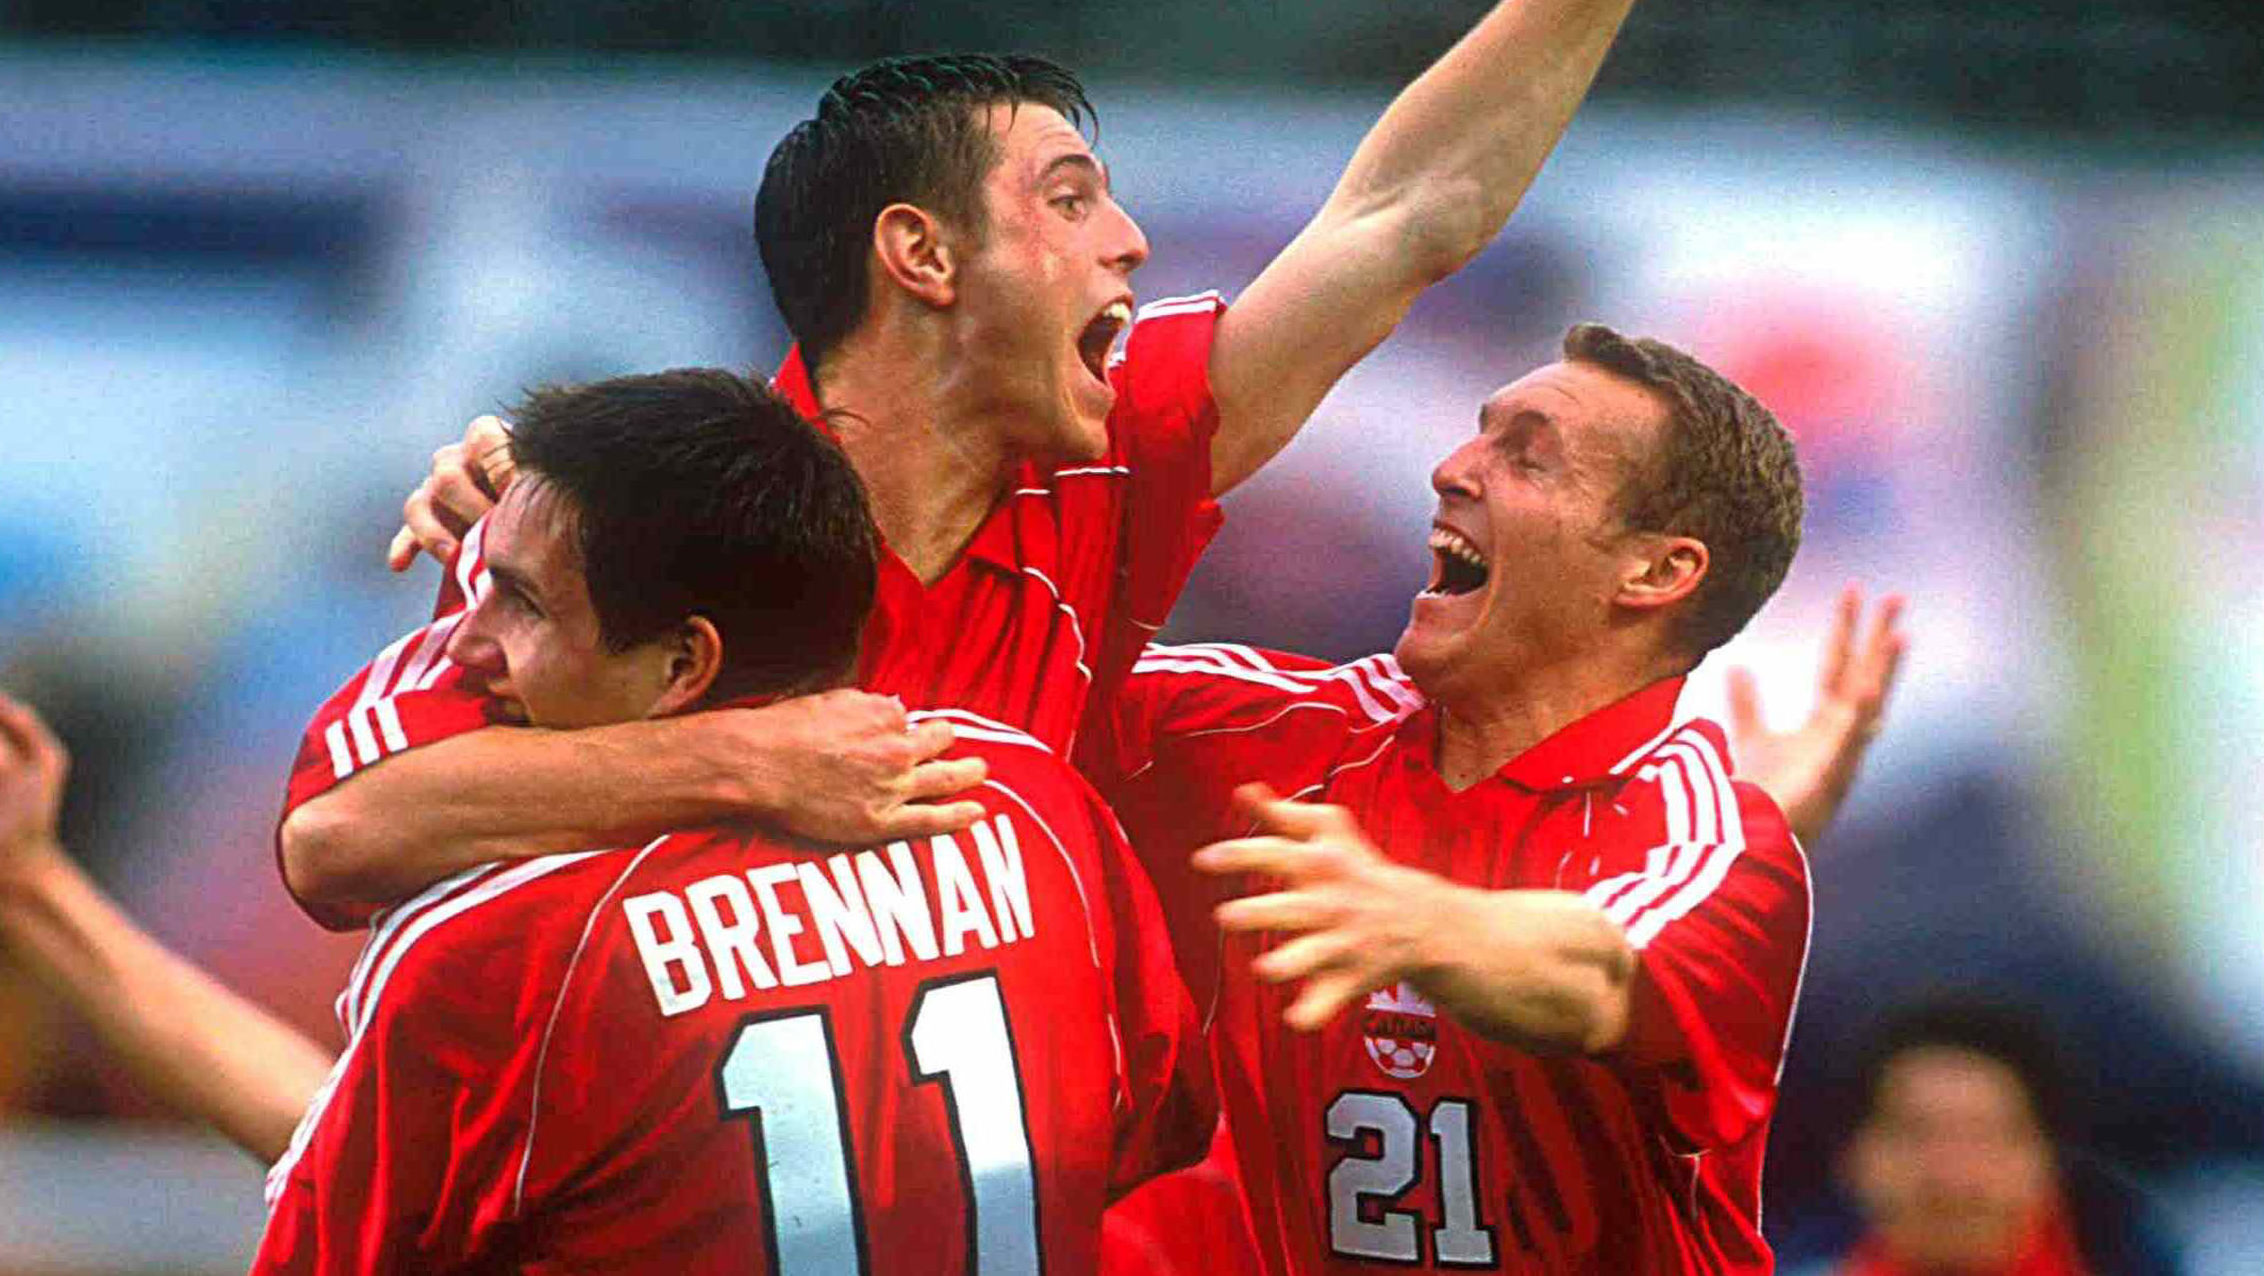 20 February 2000: General view of the canadian soccer team, celebrating the 2-1 victory over Mexico in Gold Cup 2000 game in San Diego, California./Vista general del equipo canadiense de futbol, celebrando la victoria de 2-1 sobre Mexico en juego de la Copa de Oro 2000 en San Diego, California.